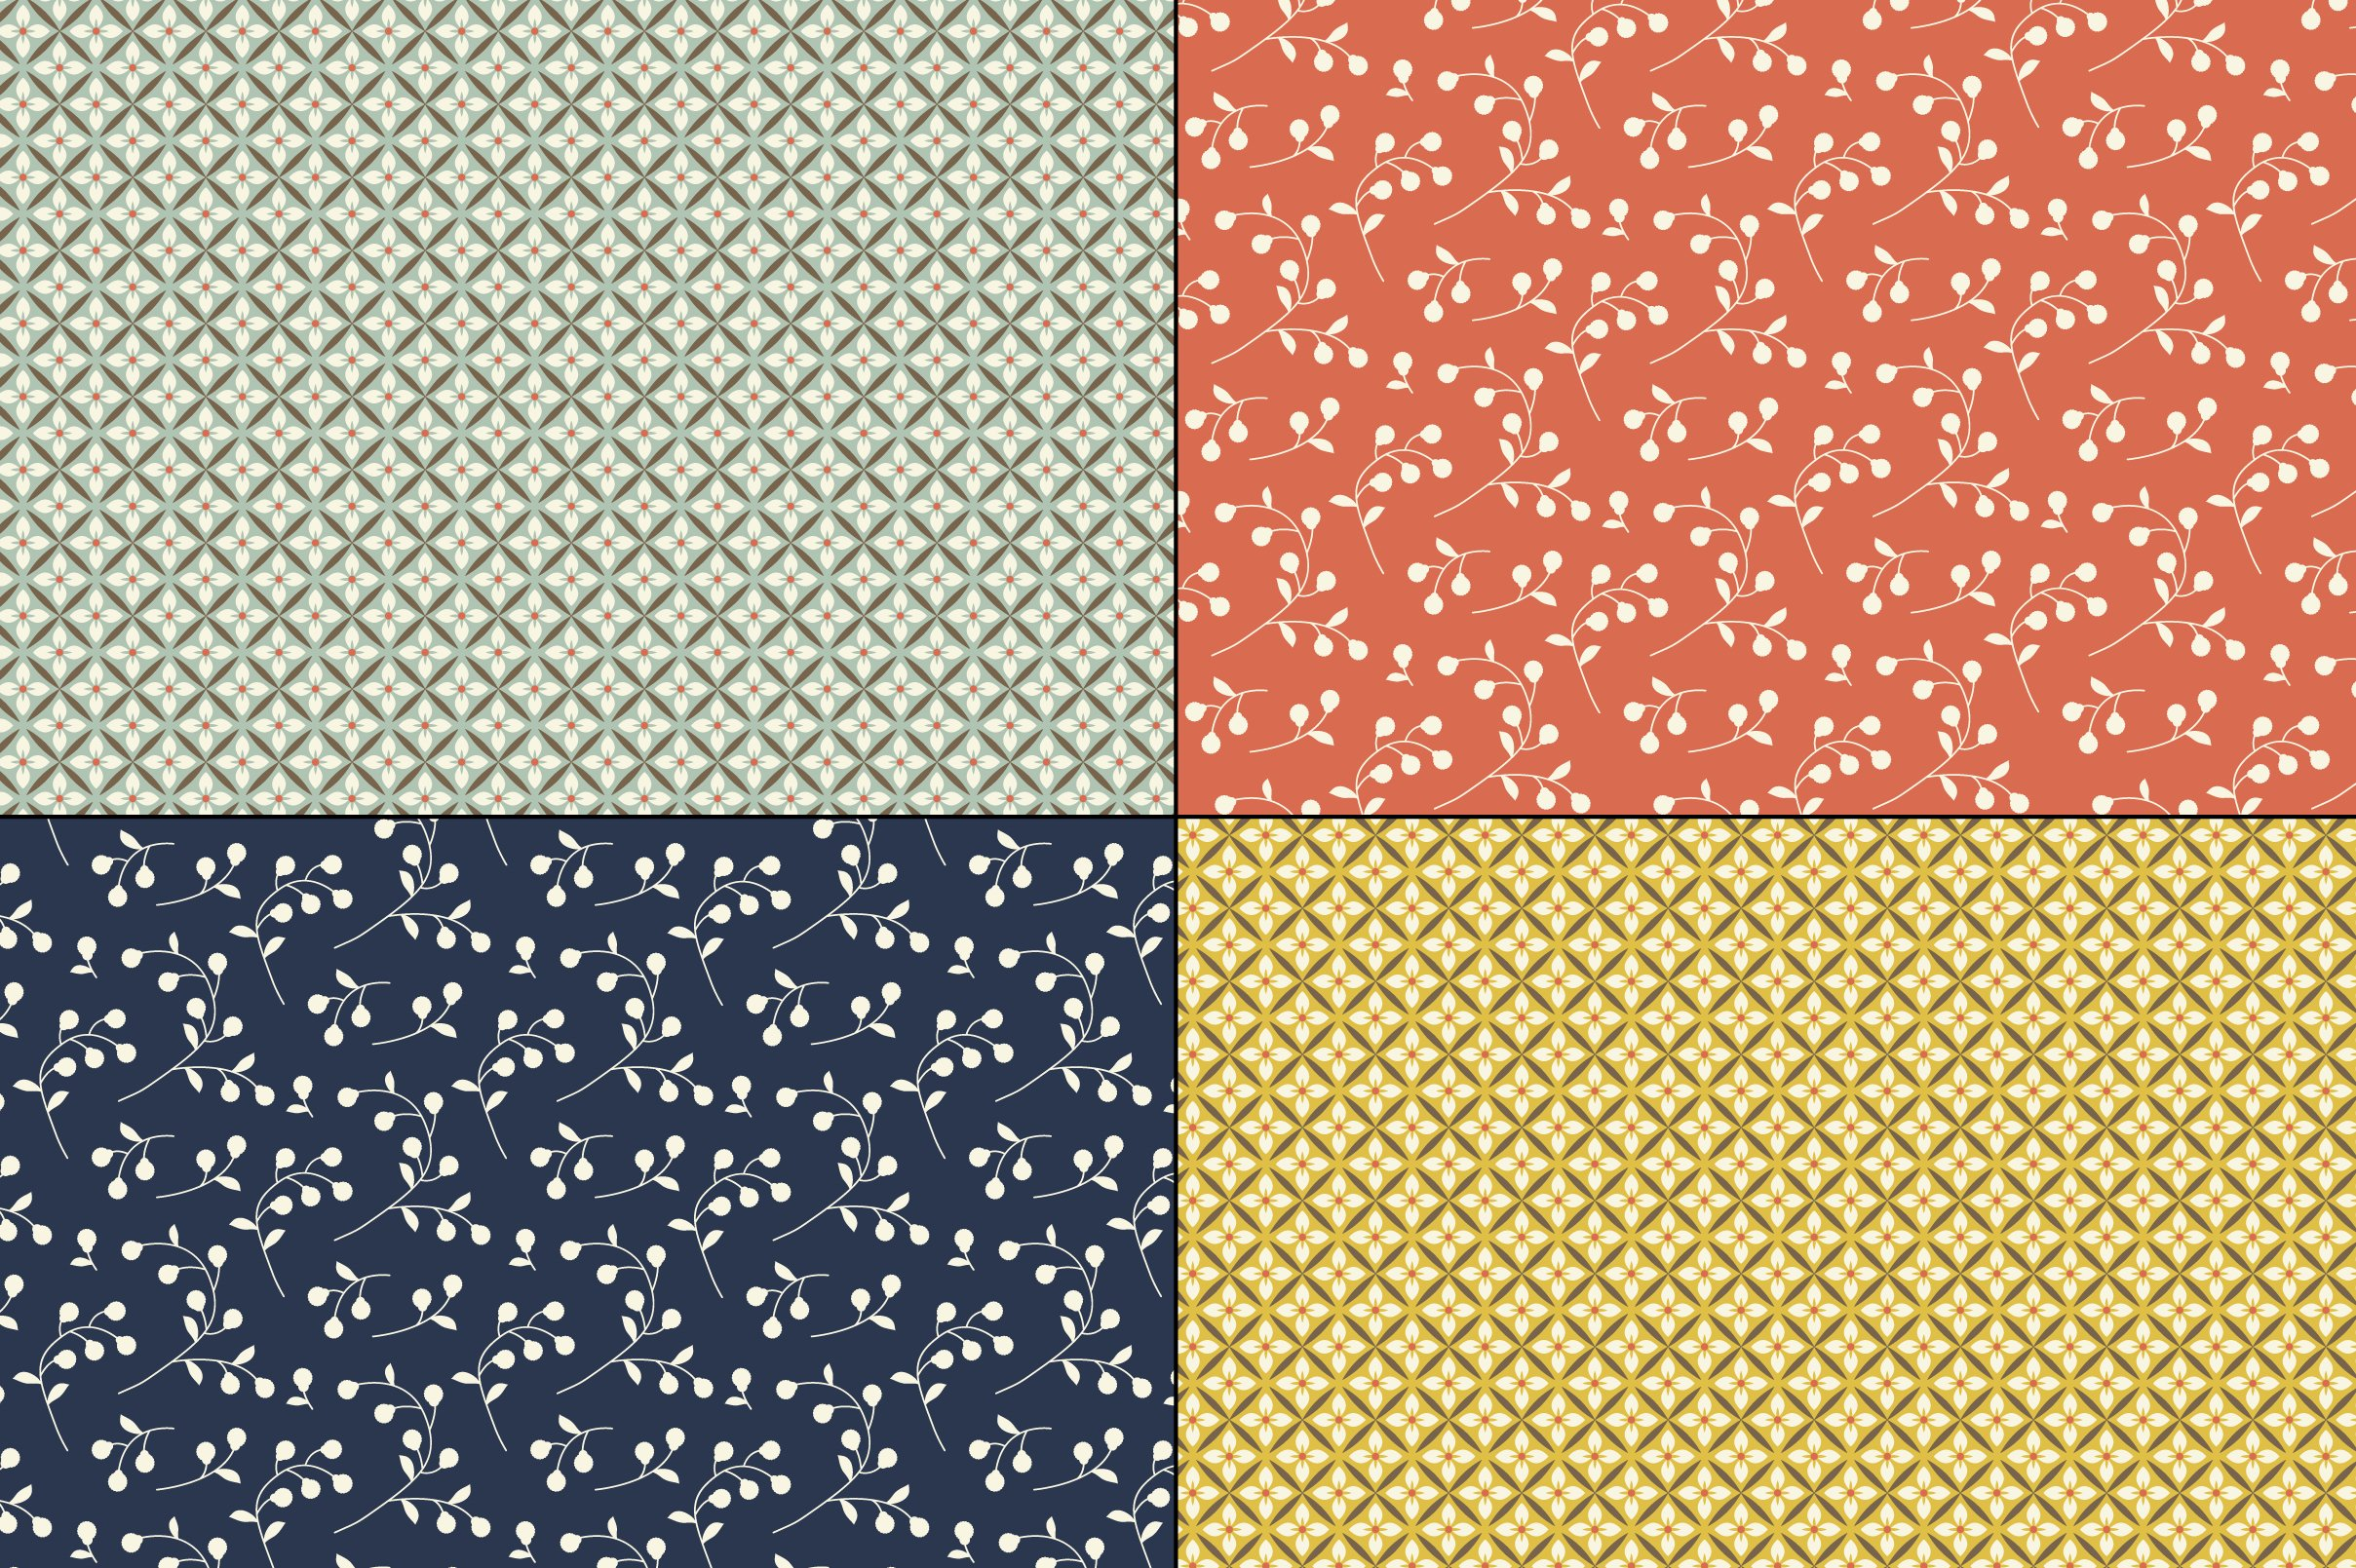 Seamless Retro Floral & Geometric Patterns example image 3